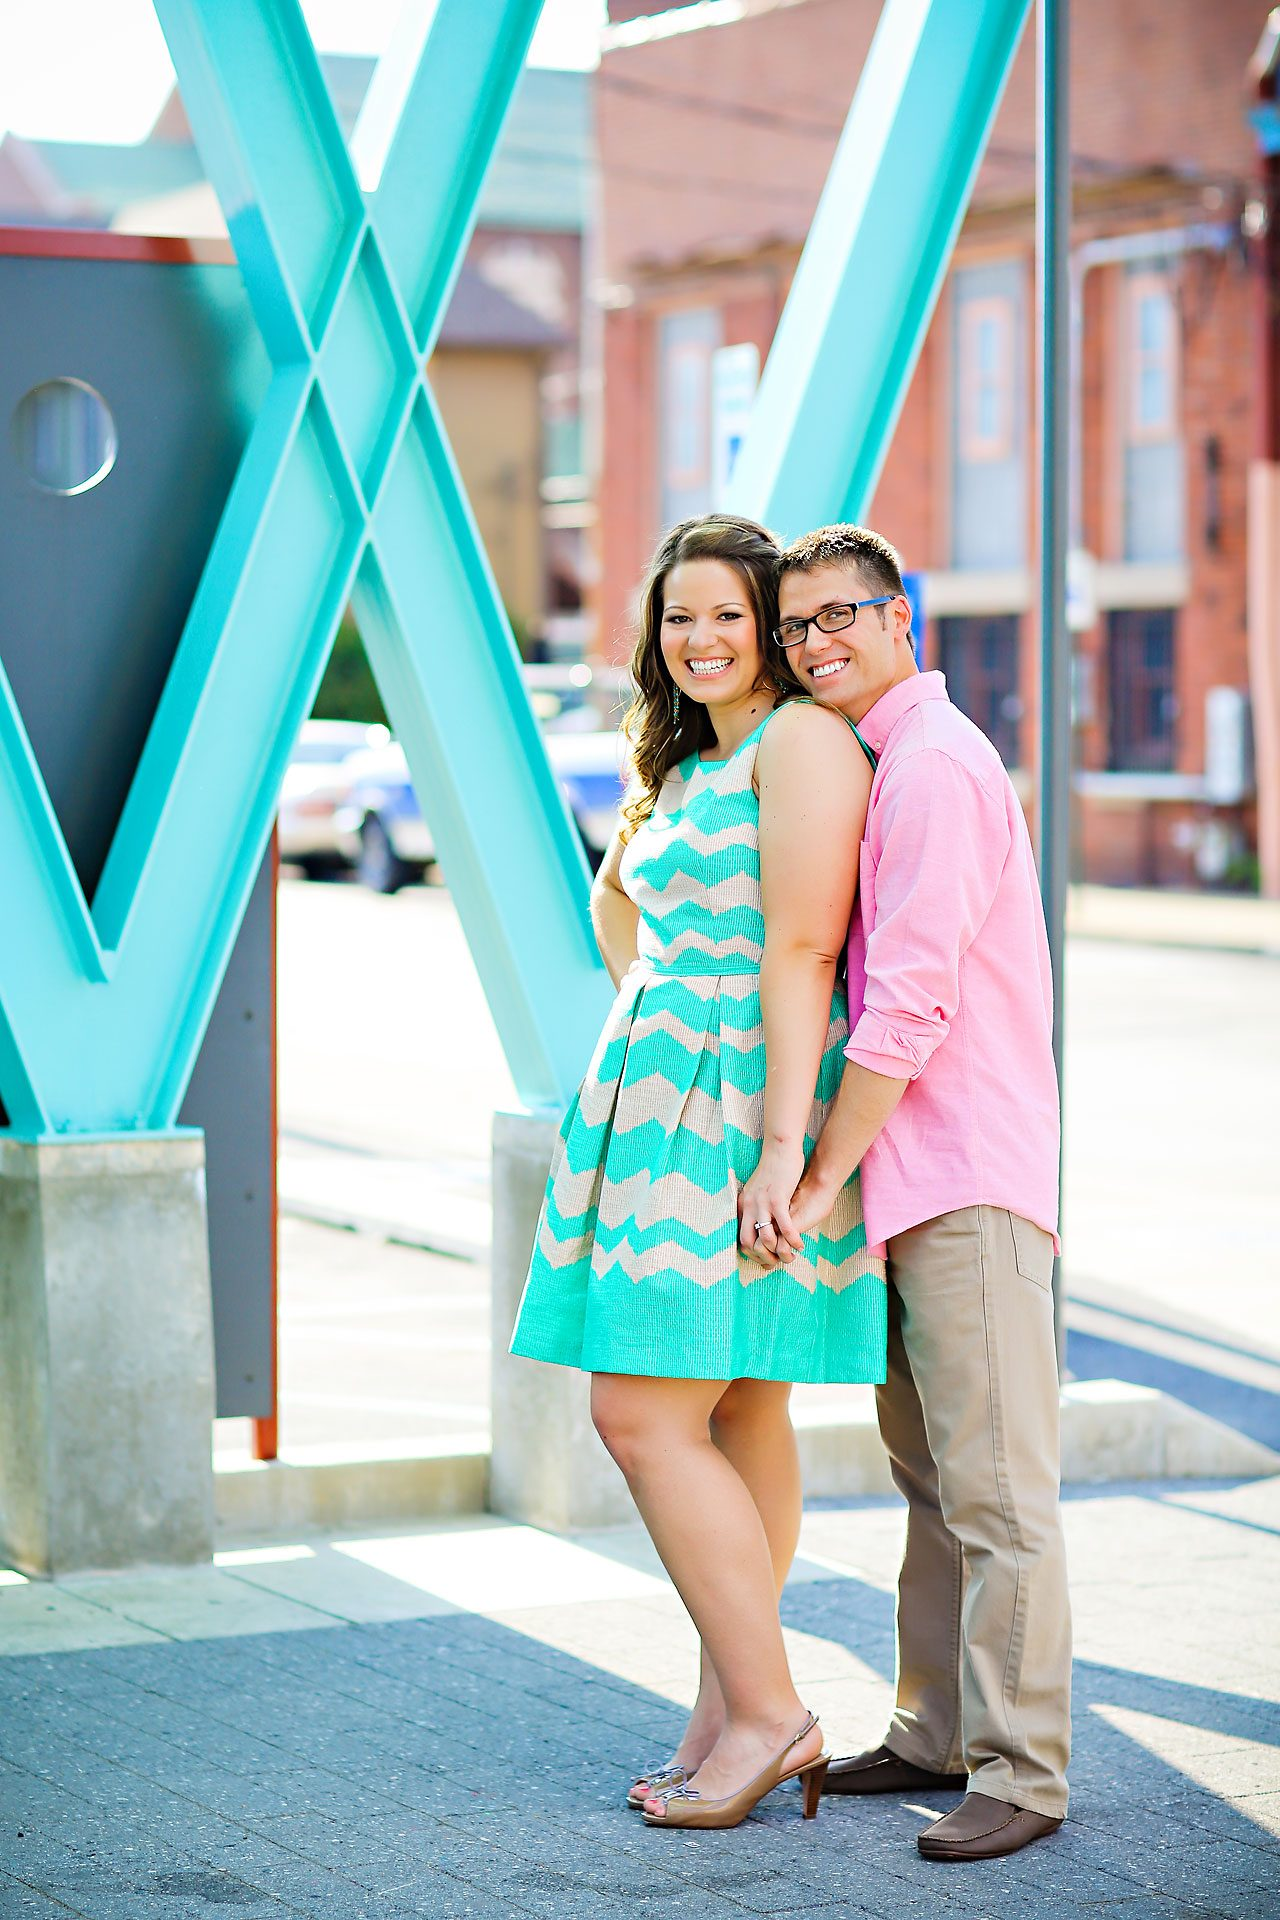 Indianapolis Engagement Photographer Kim Spencer 007